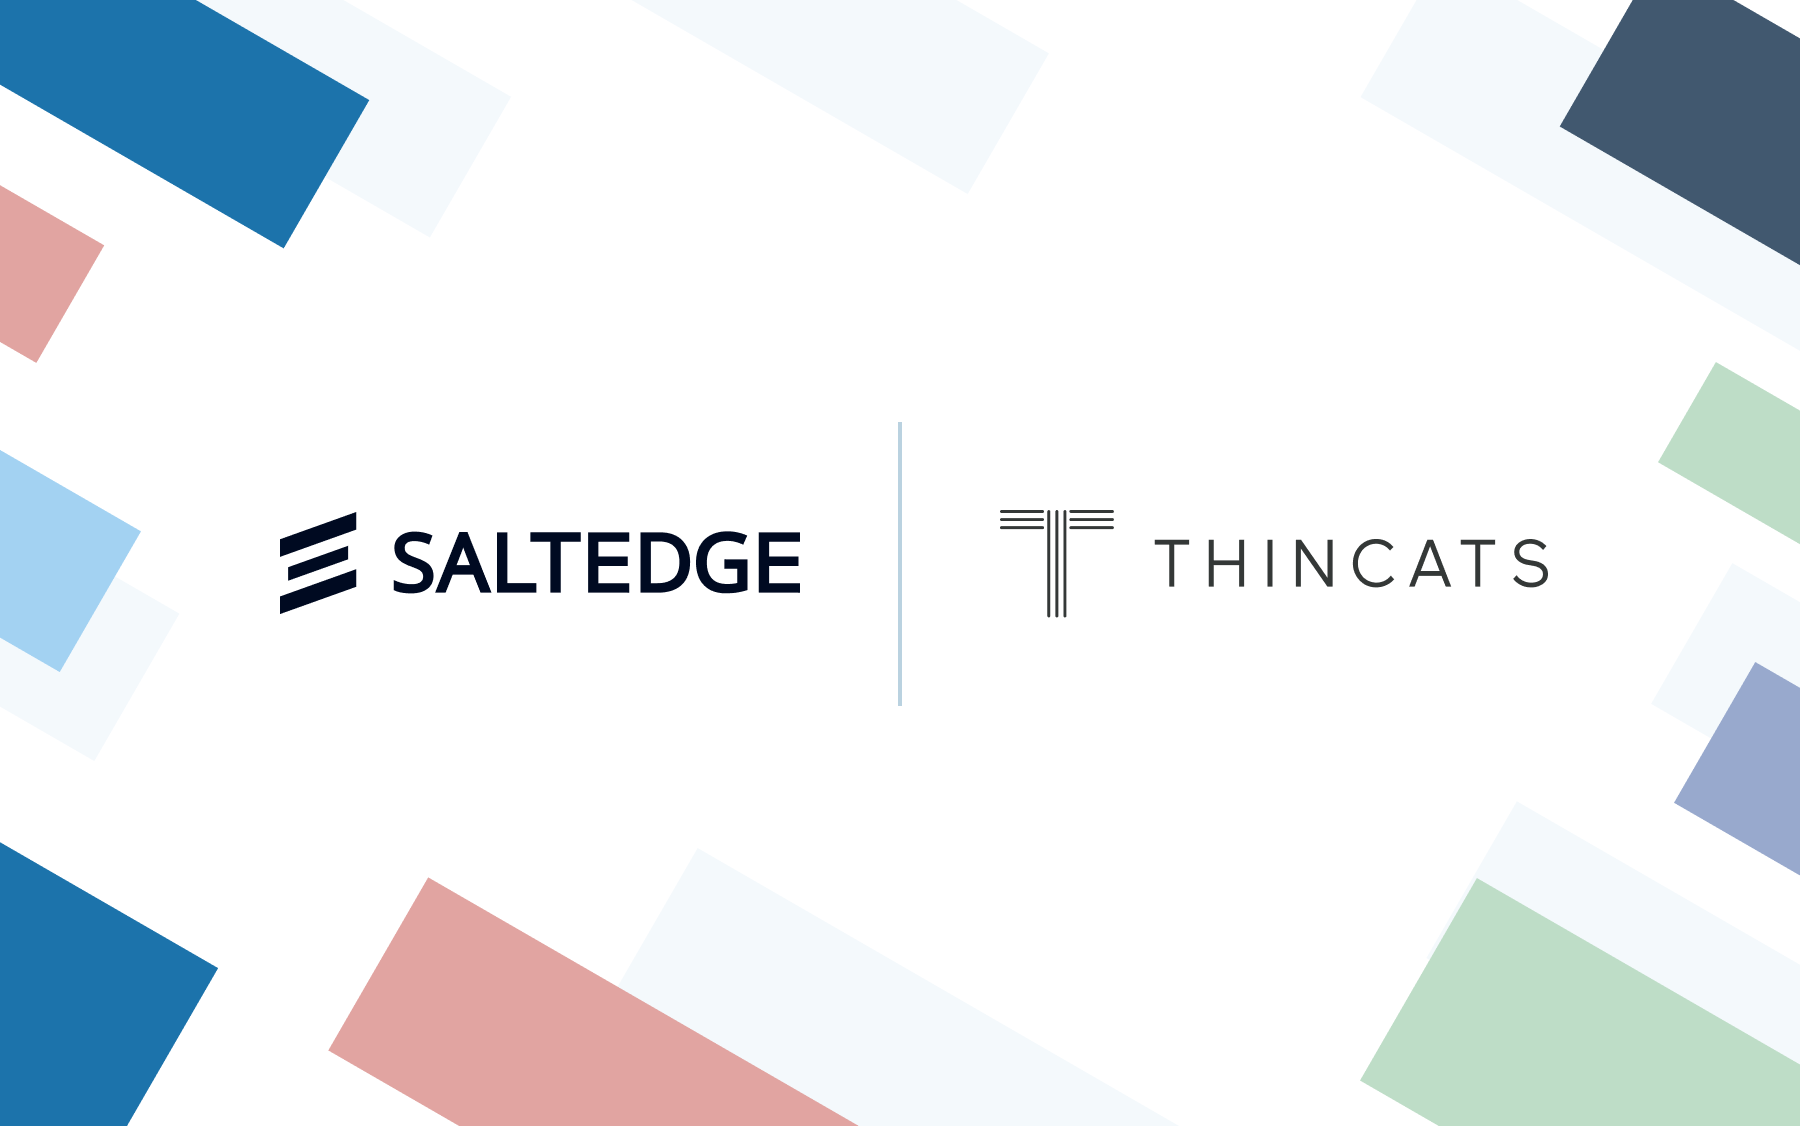 ThinCats and Salt Edge to Bring Open Banking Benefits to SME Lending